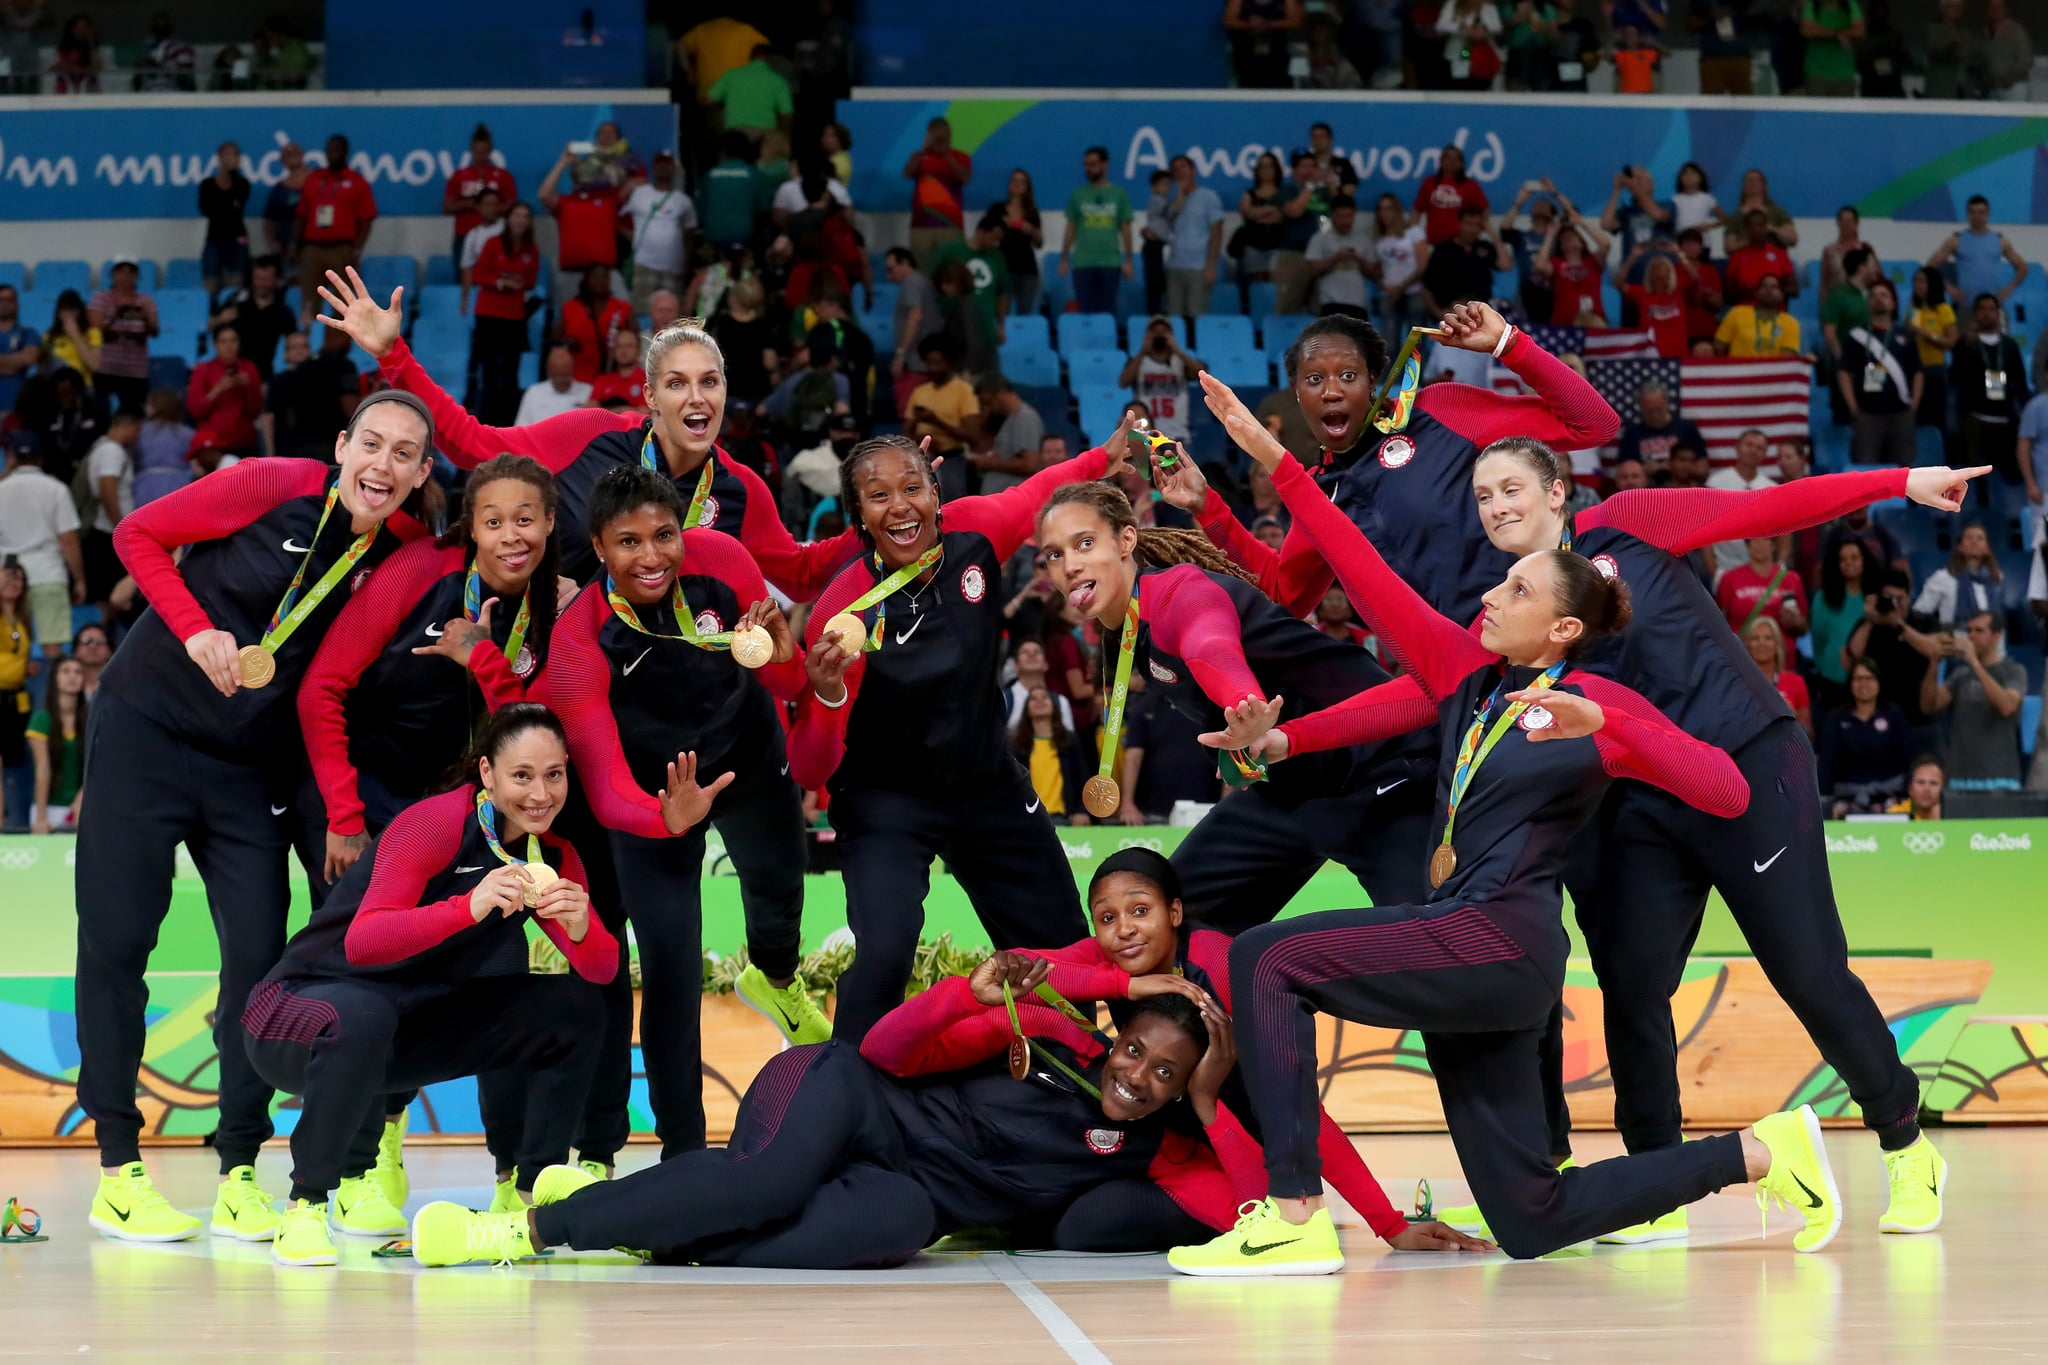 RIO DE JANEIRO, BRAZIL - AUGUST 20:  Gold medalists Team USA celebrate during the medal ceremony after the Women's Basketball competition on Day 15 of the Rio 2016 Olympic Games at Carioca Arena 1 on August 20, 2016 in Rio de Janeiro, Brazil.  (Photo by Tom Pennington/Getty Images)